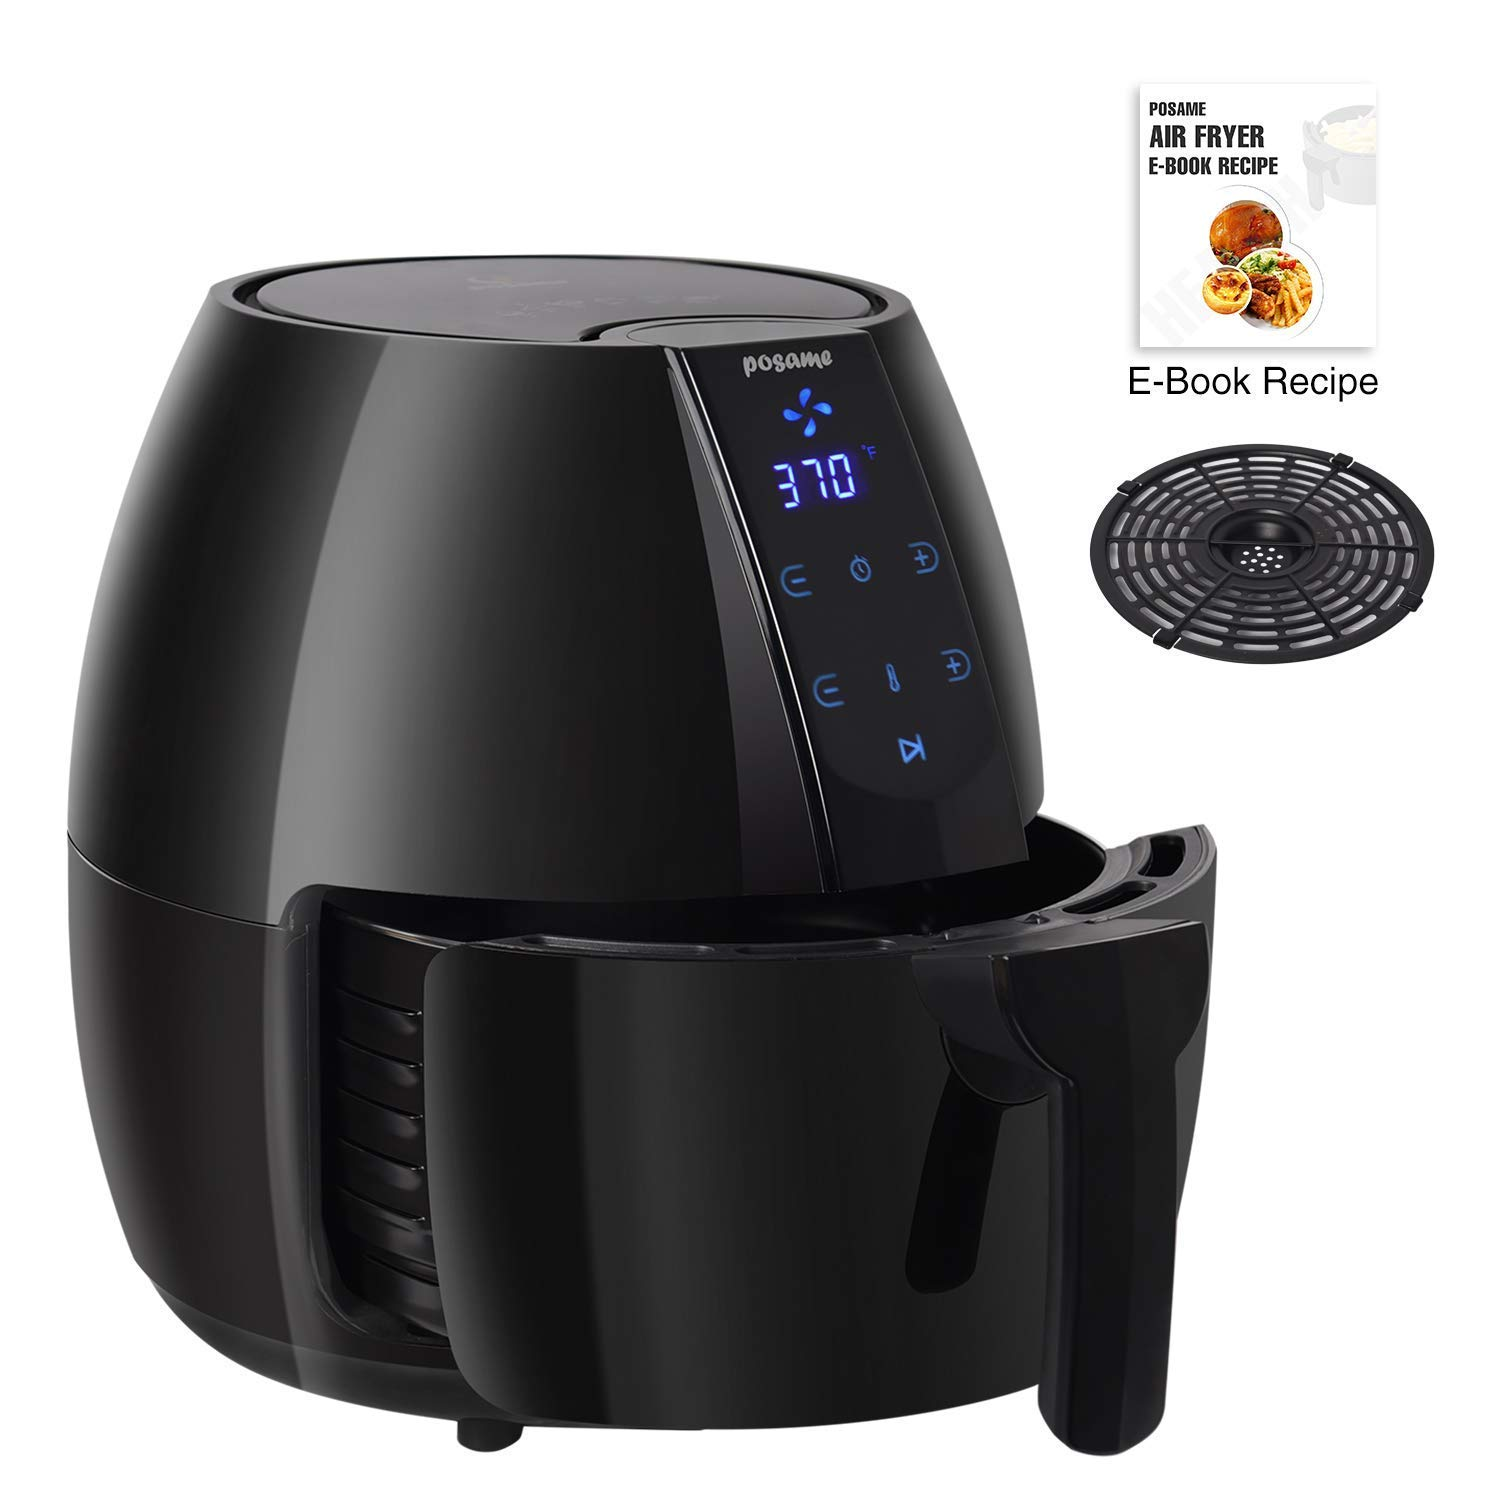 Air Fryer, POSAME LCD Digital Programmable Airfryer for Healthier Crisp Foods, Easily Detachable Frying Pot, Anti-scratch and Easy Clean Design, Auto Off and Memory Function, Family Size 4.2Qt